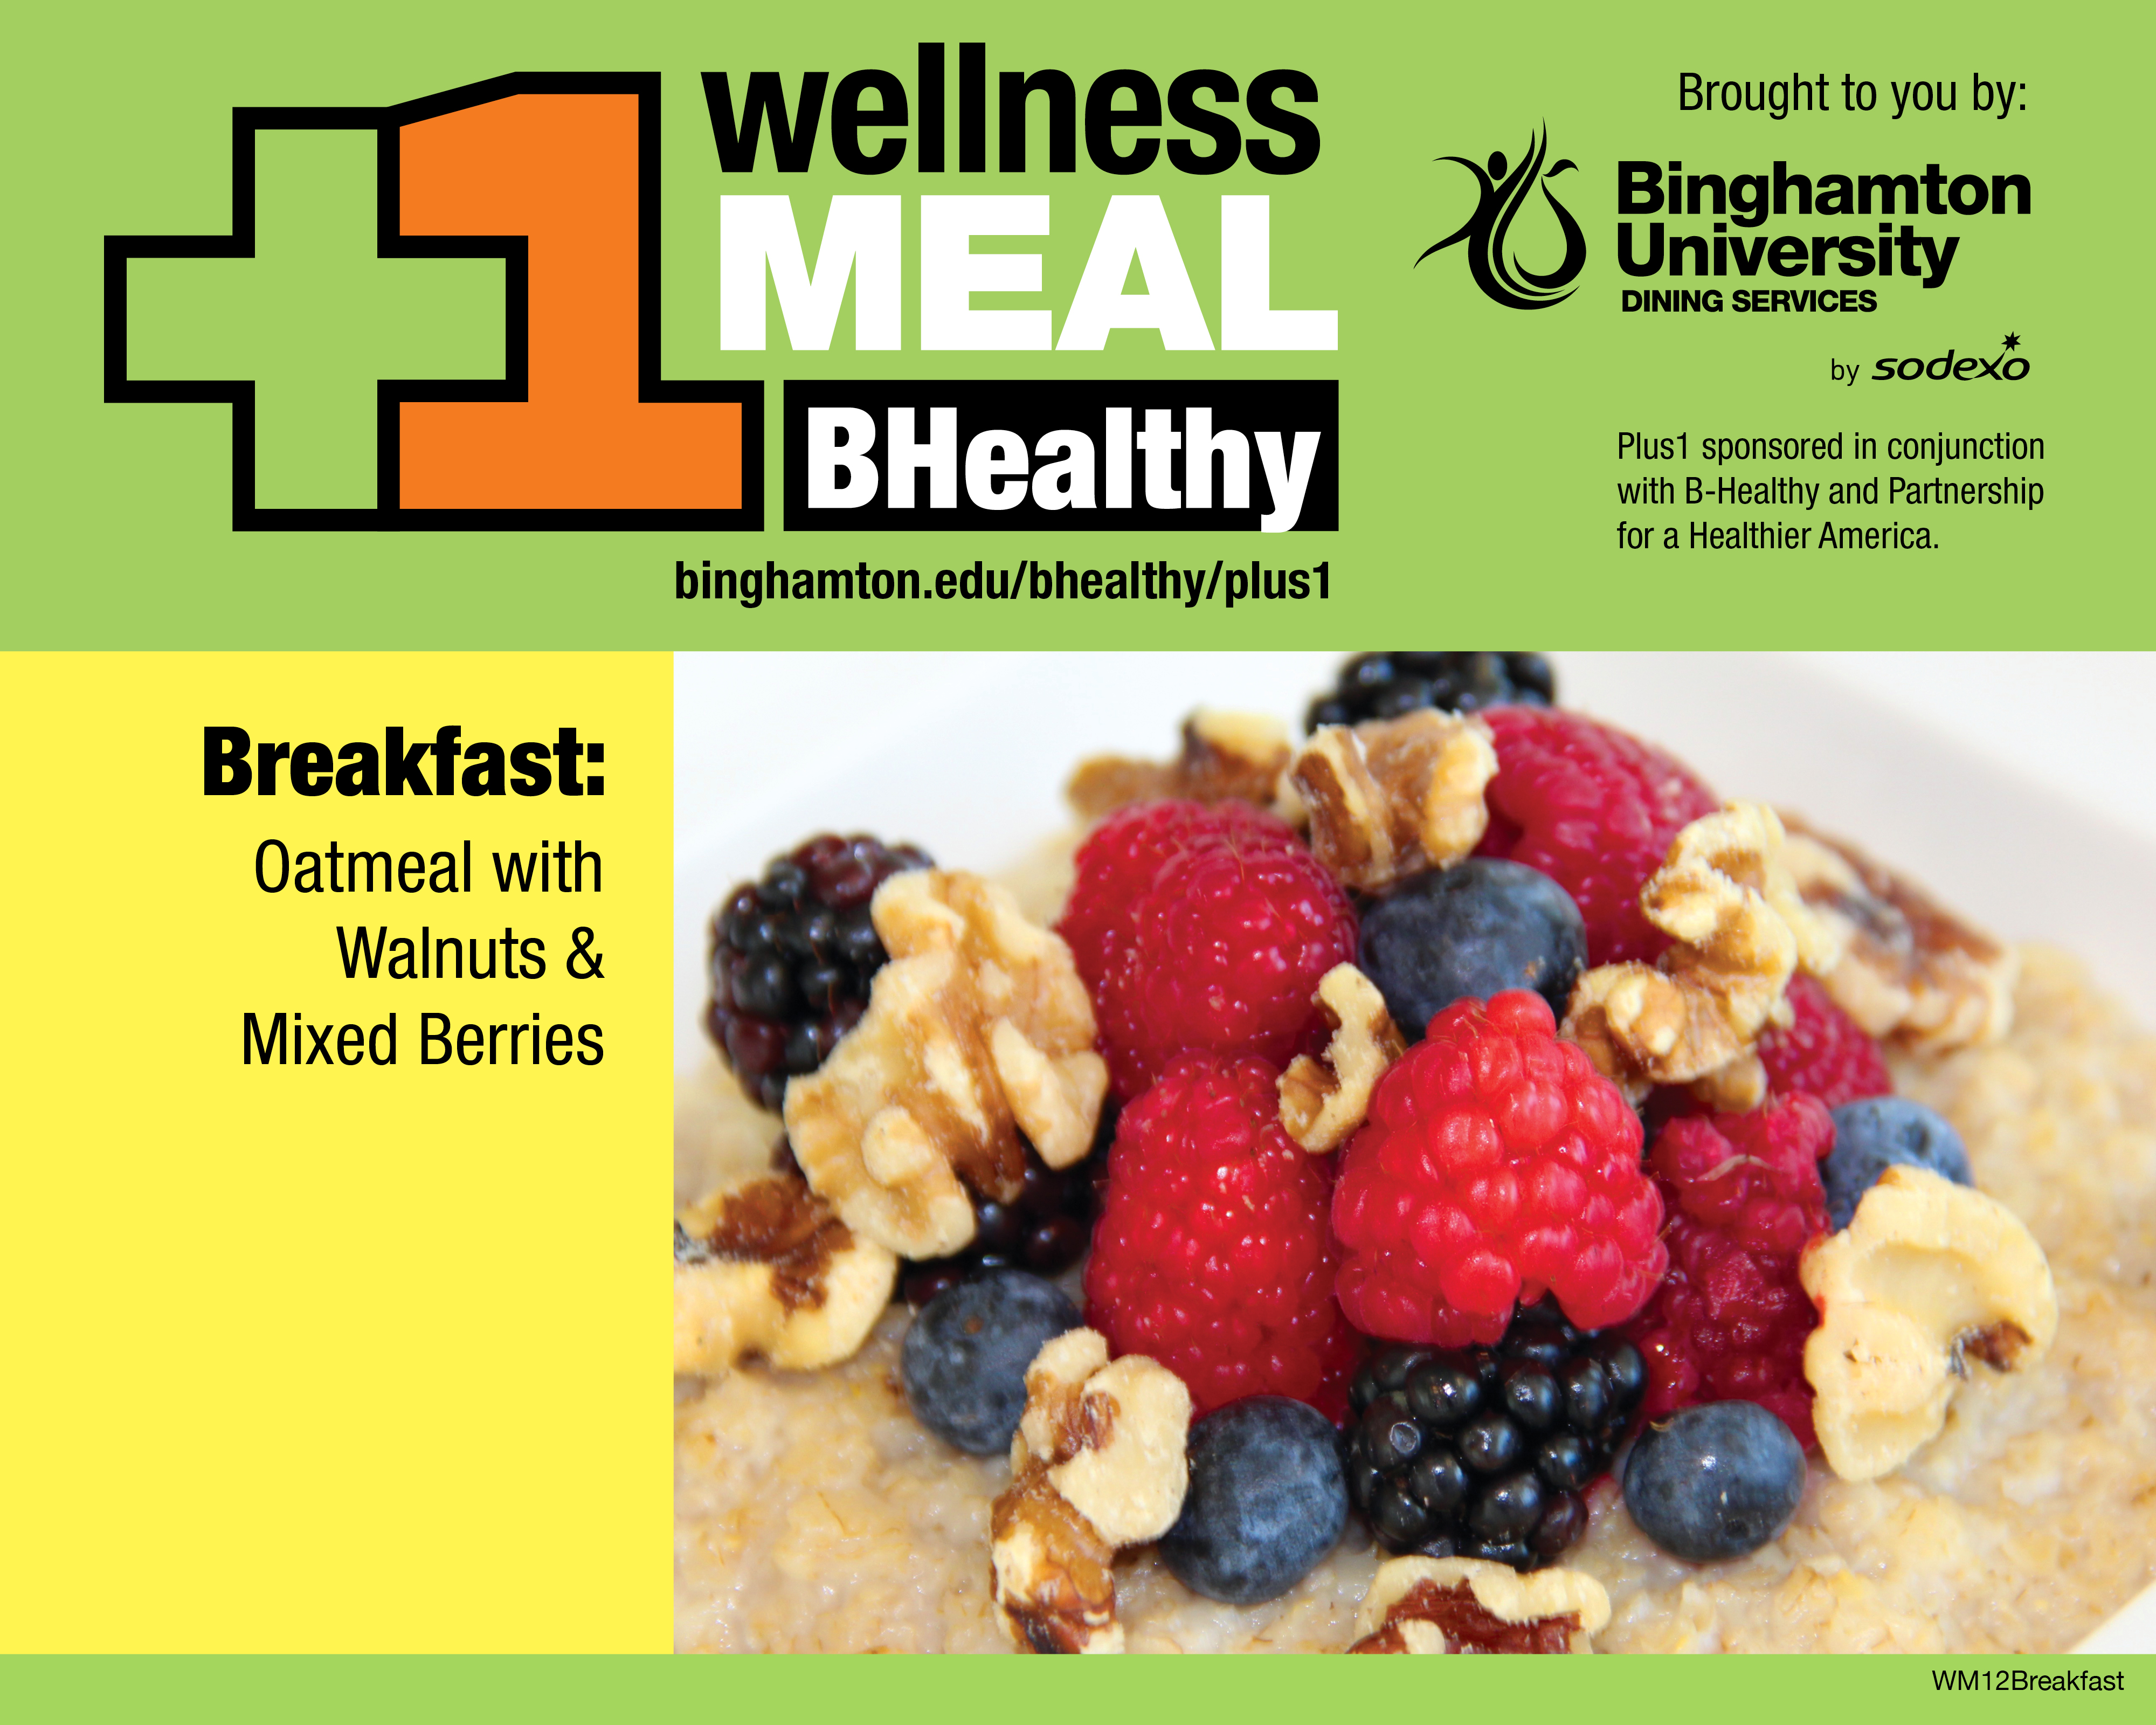 BU-Wellness-Meal1